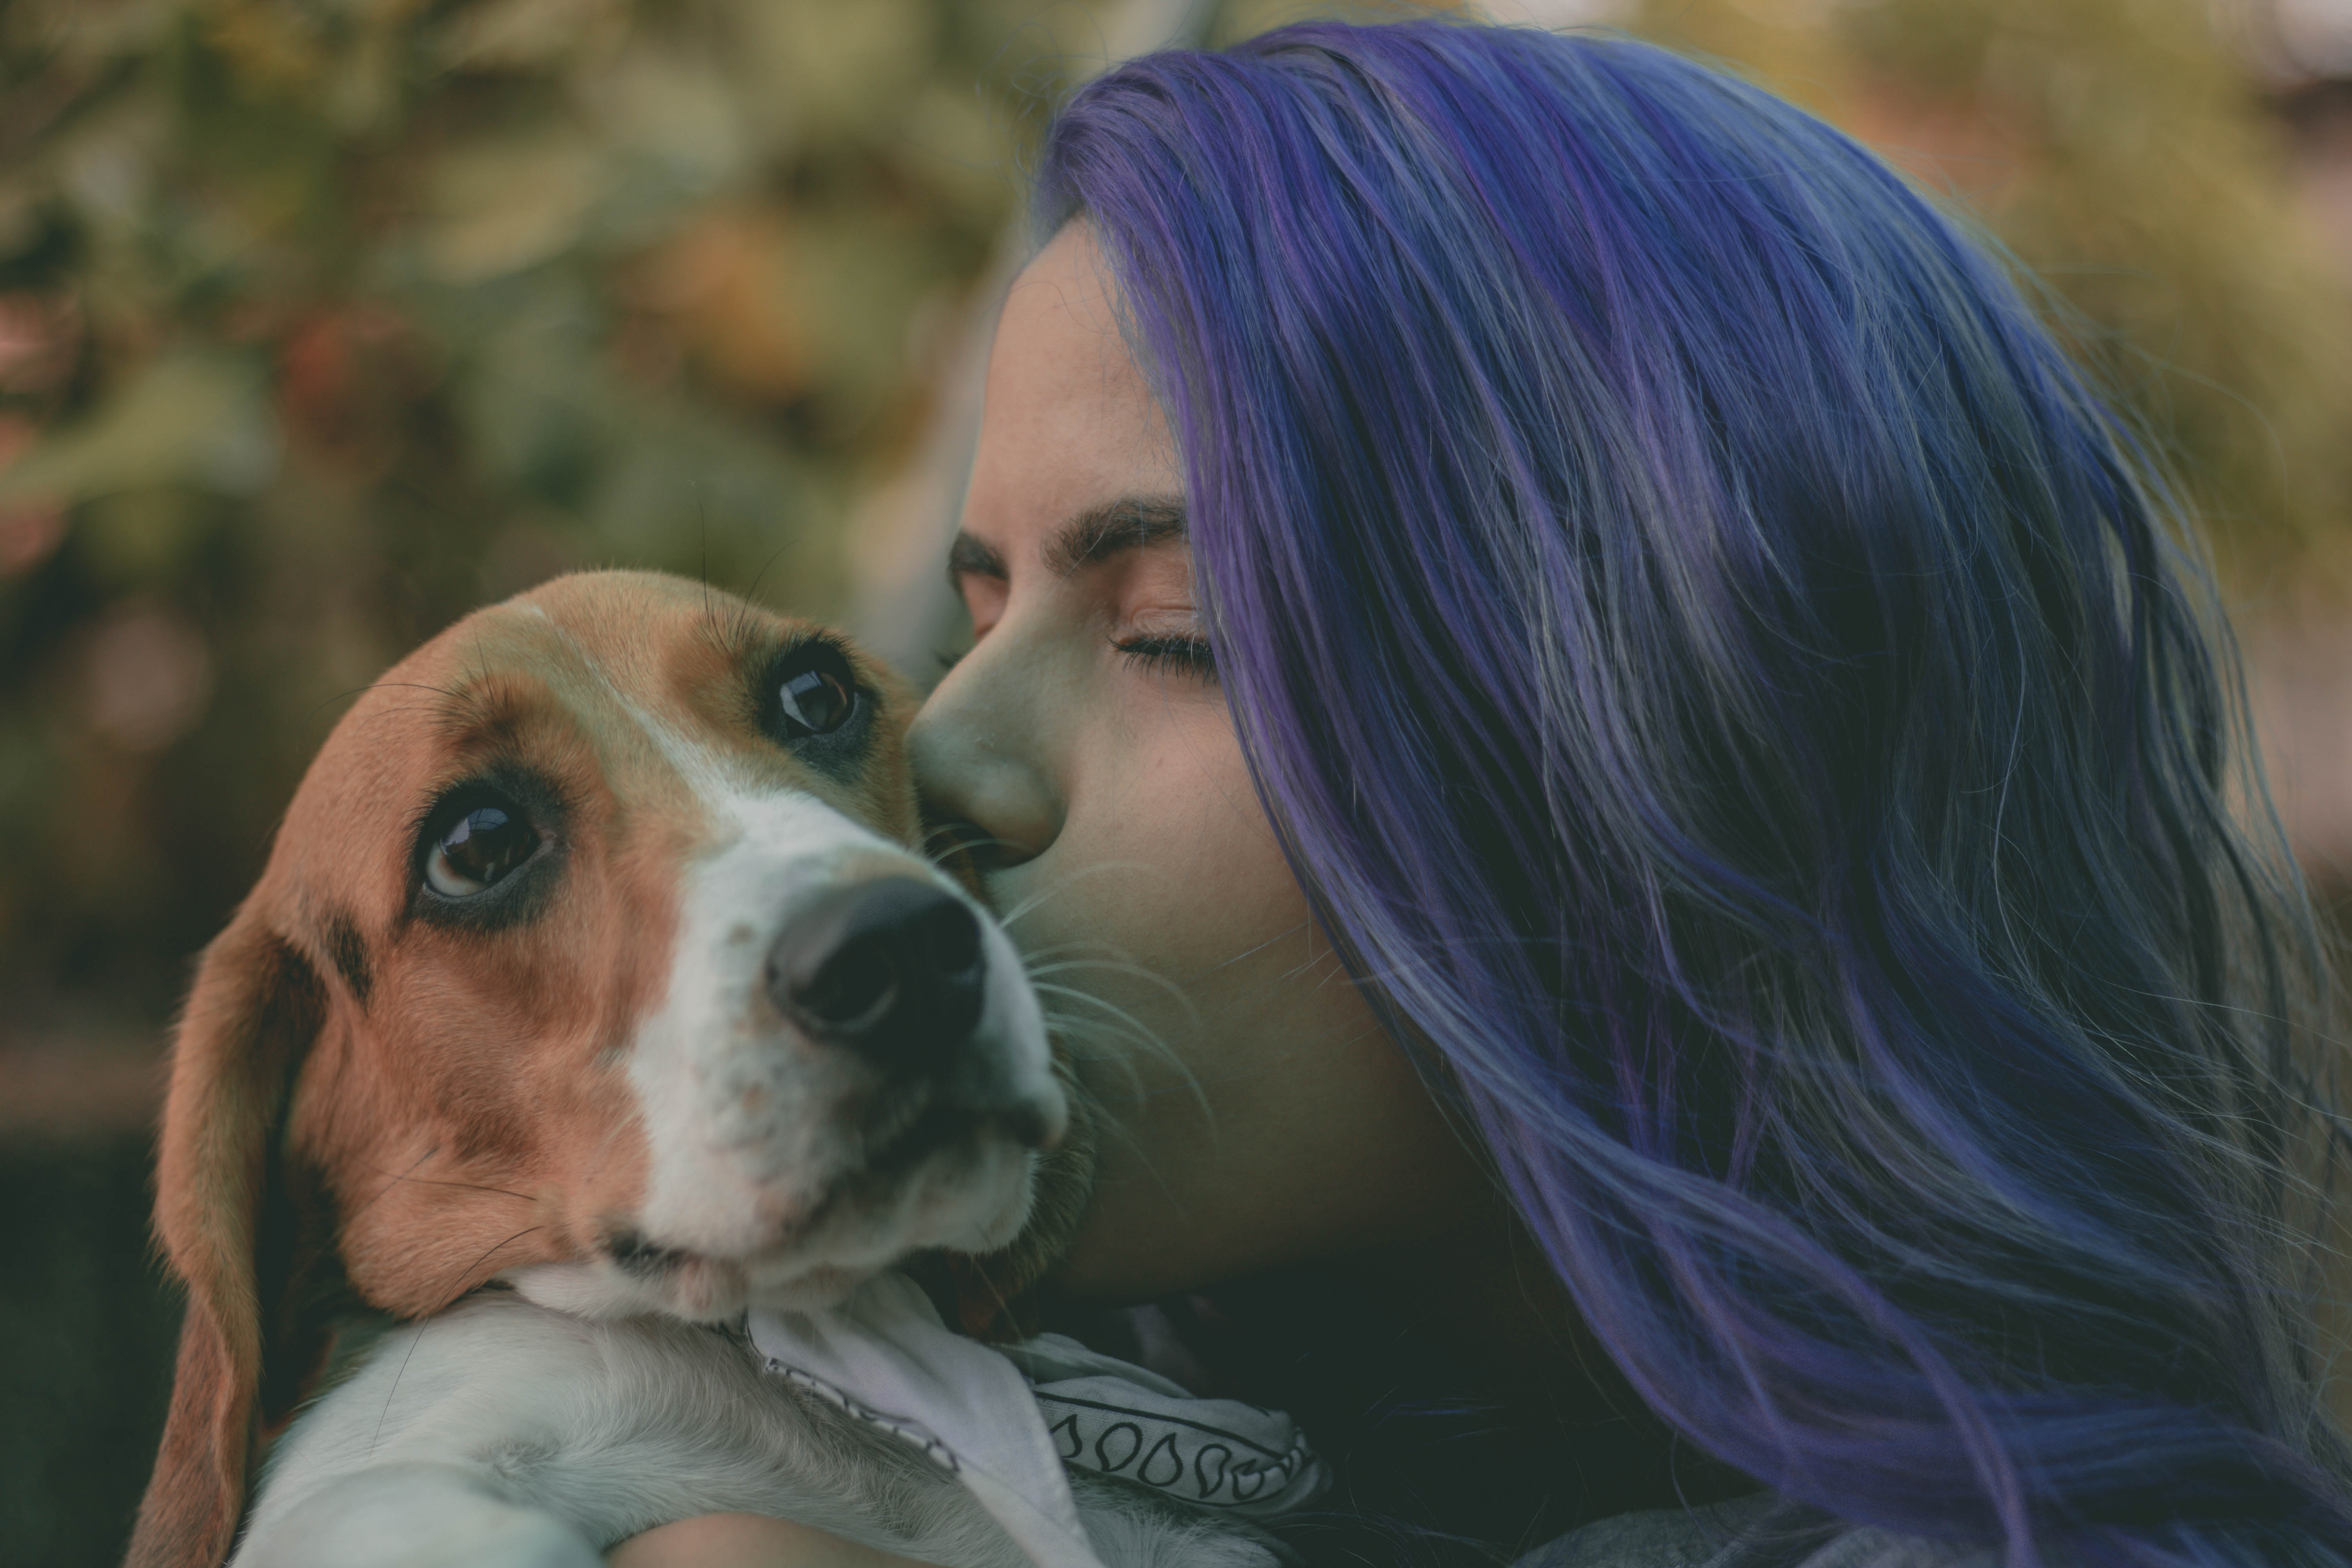 Land a new job by learning from man's best friend